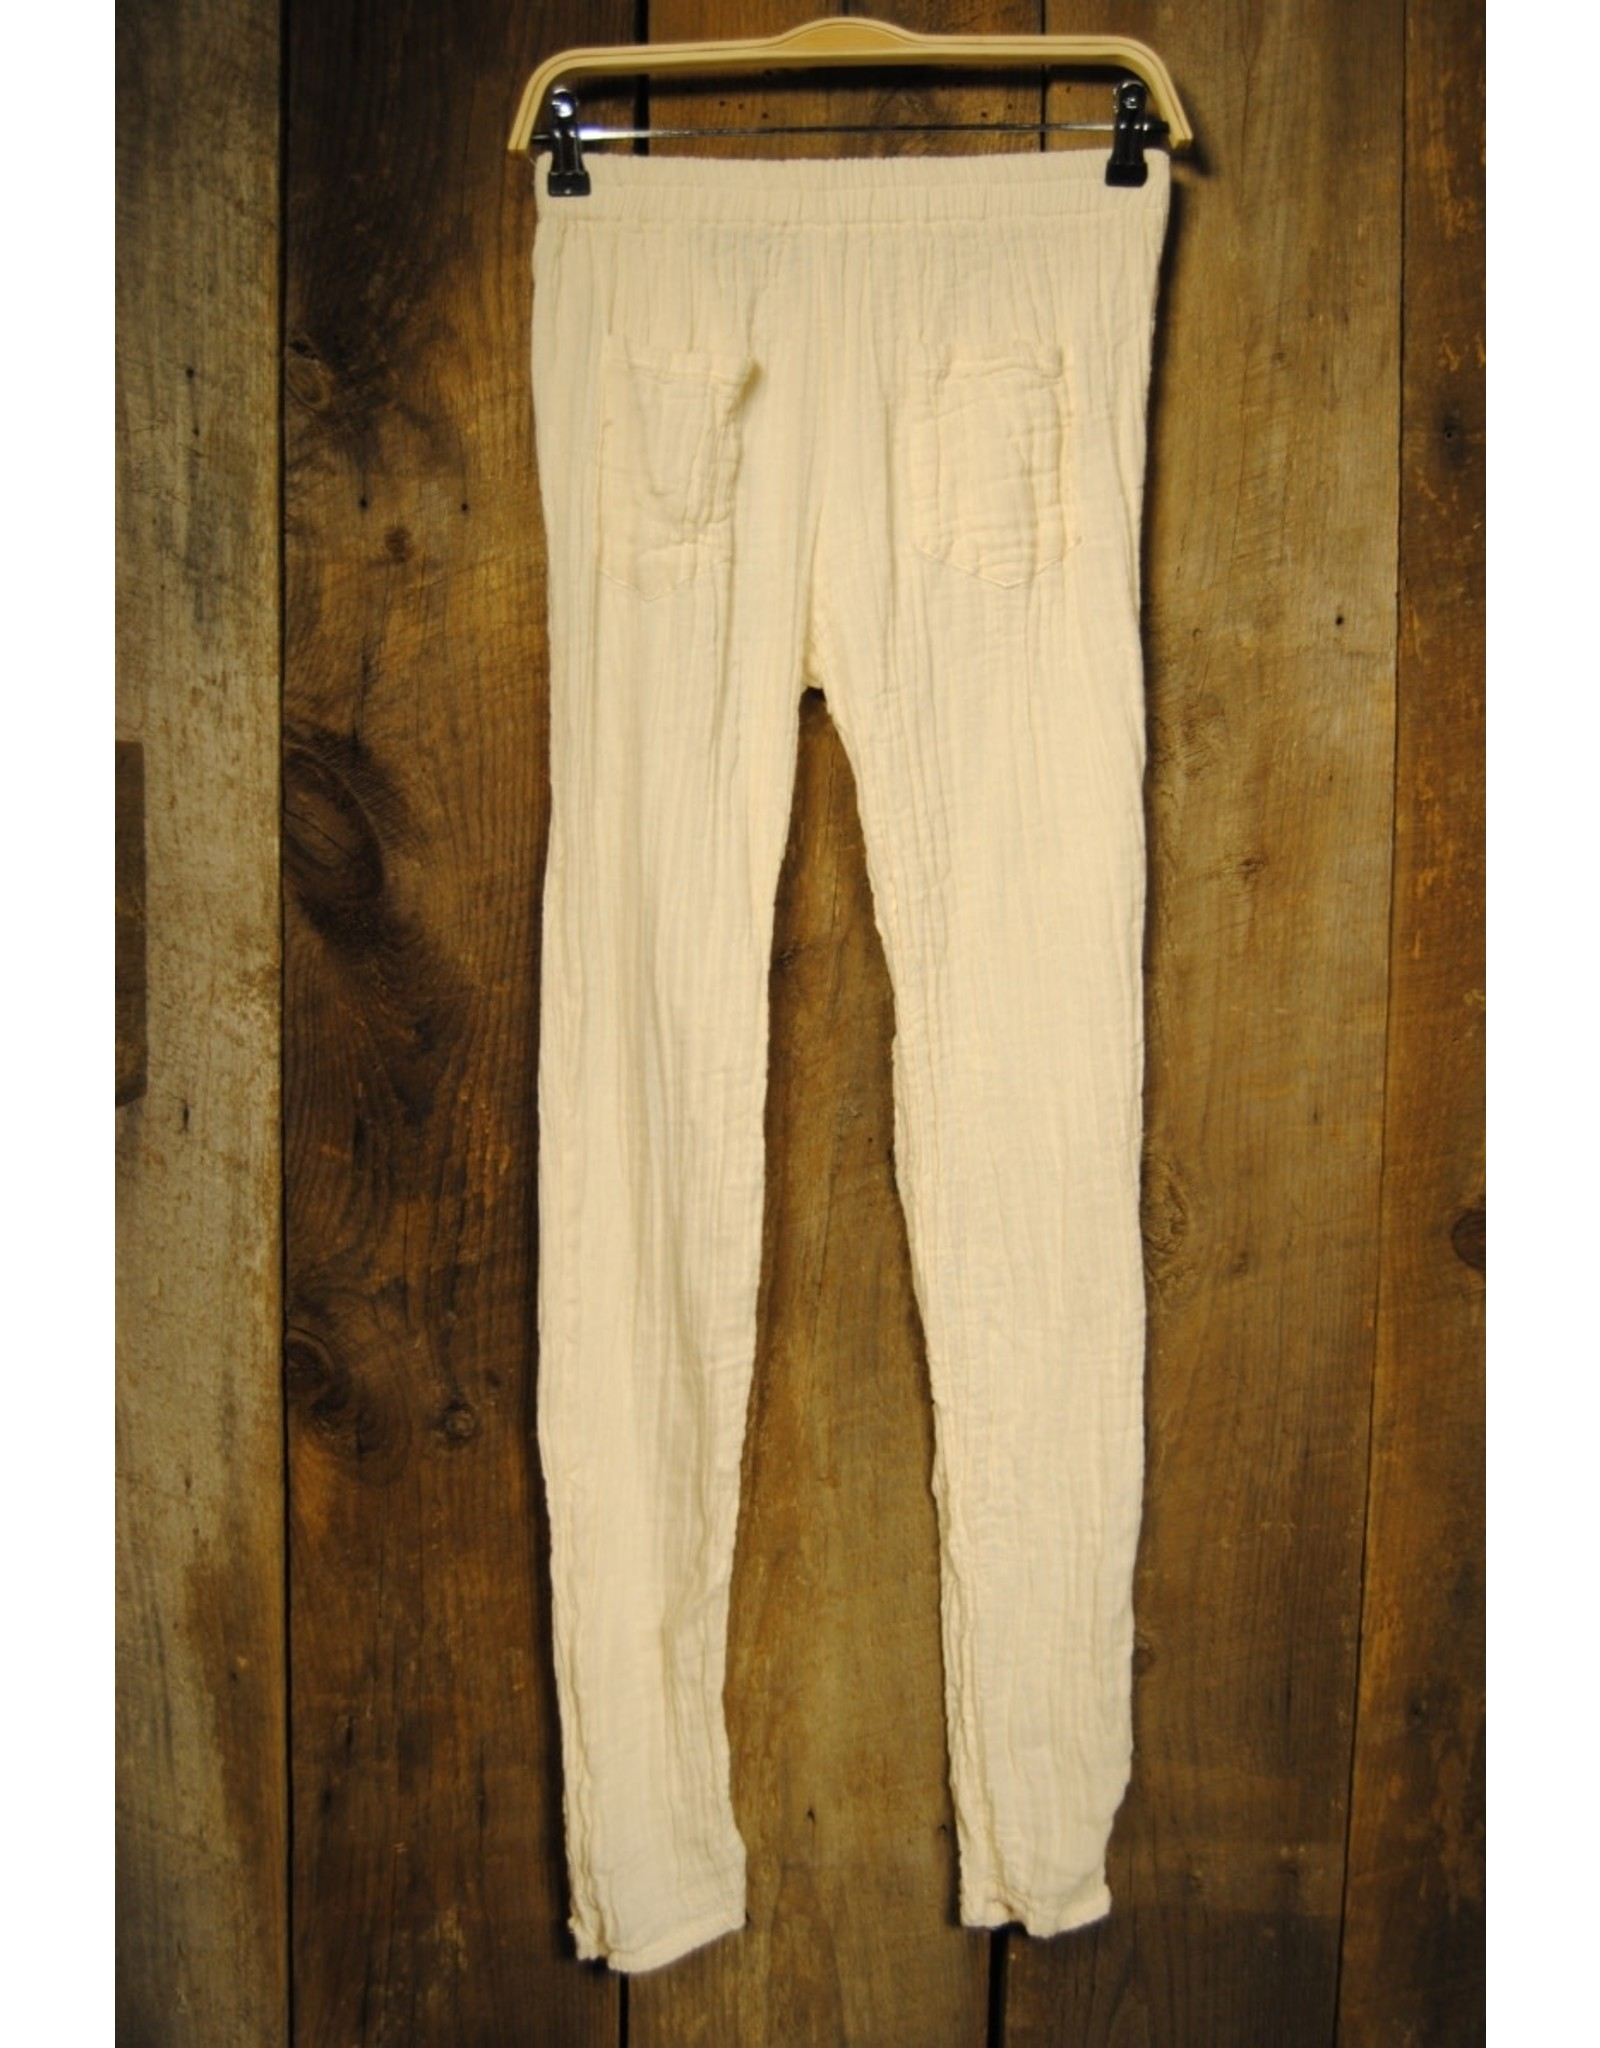 Double Cotton Leggings, Natural L/XL, Thailand